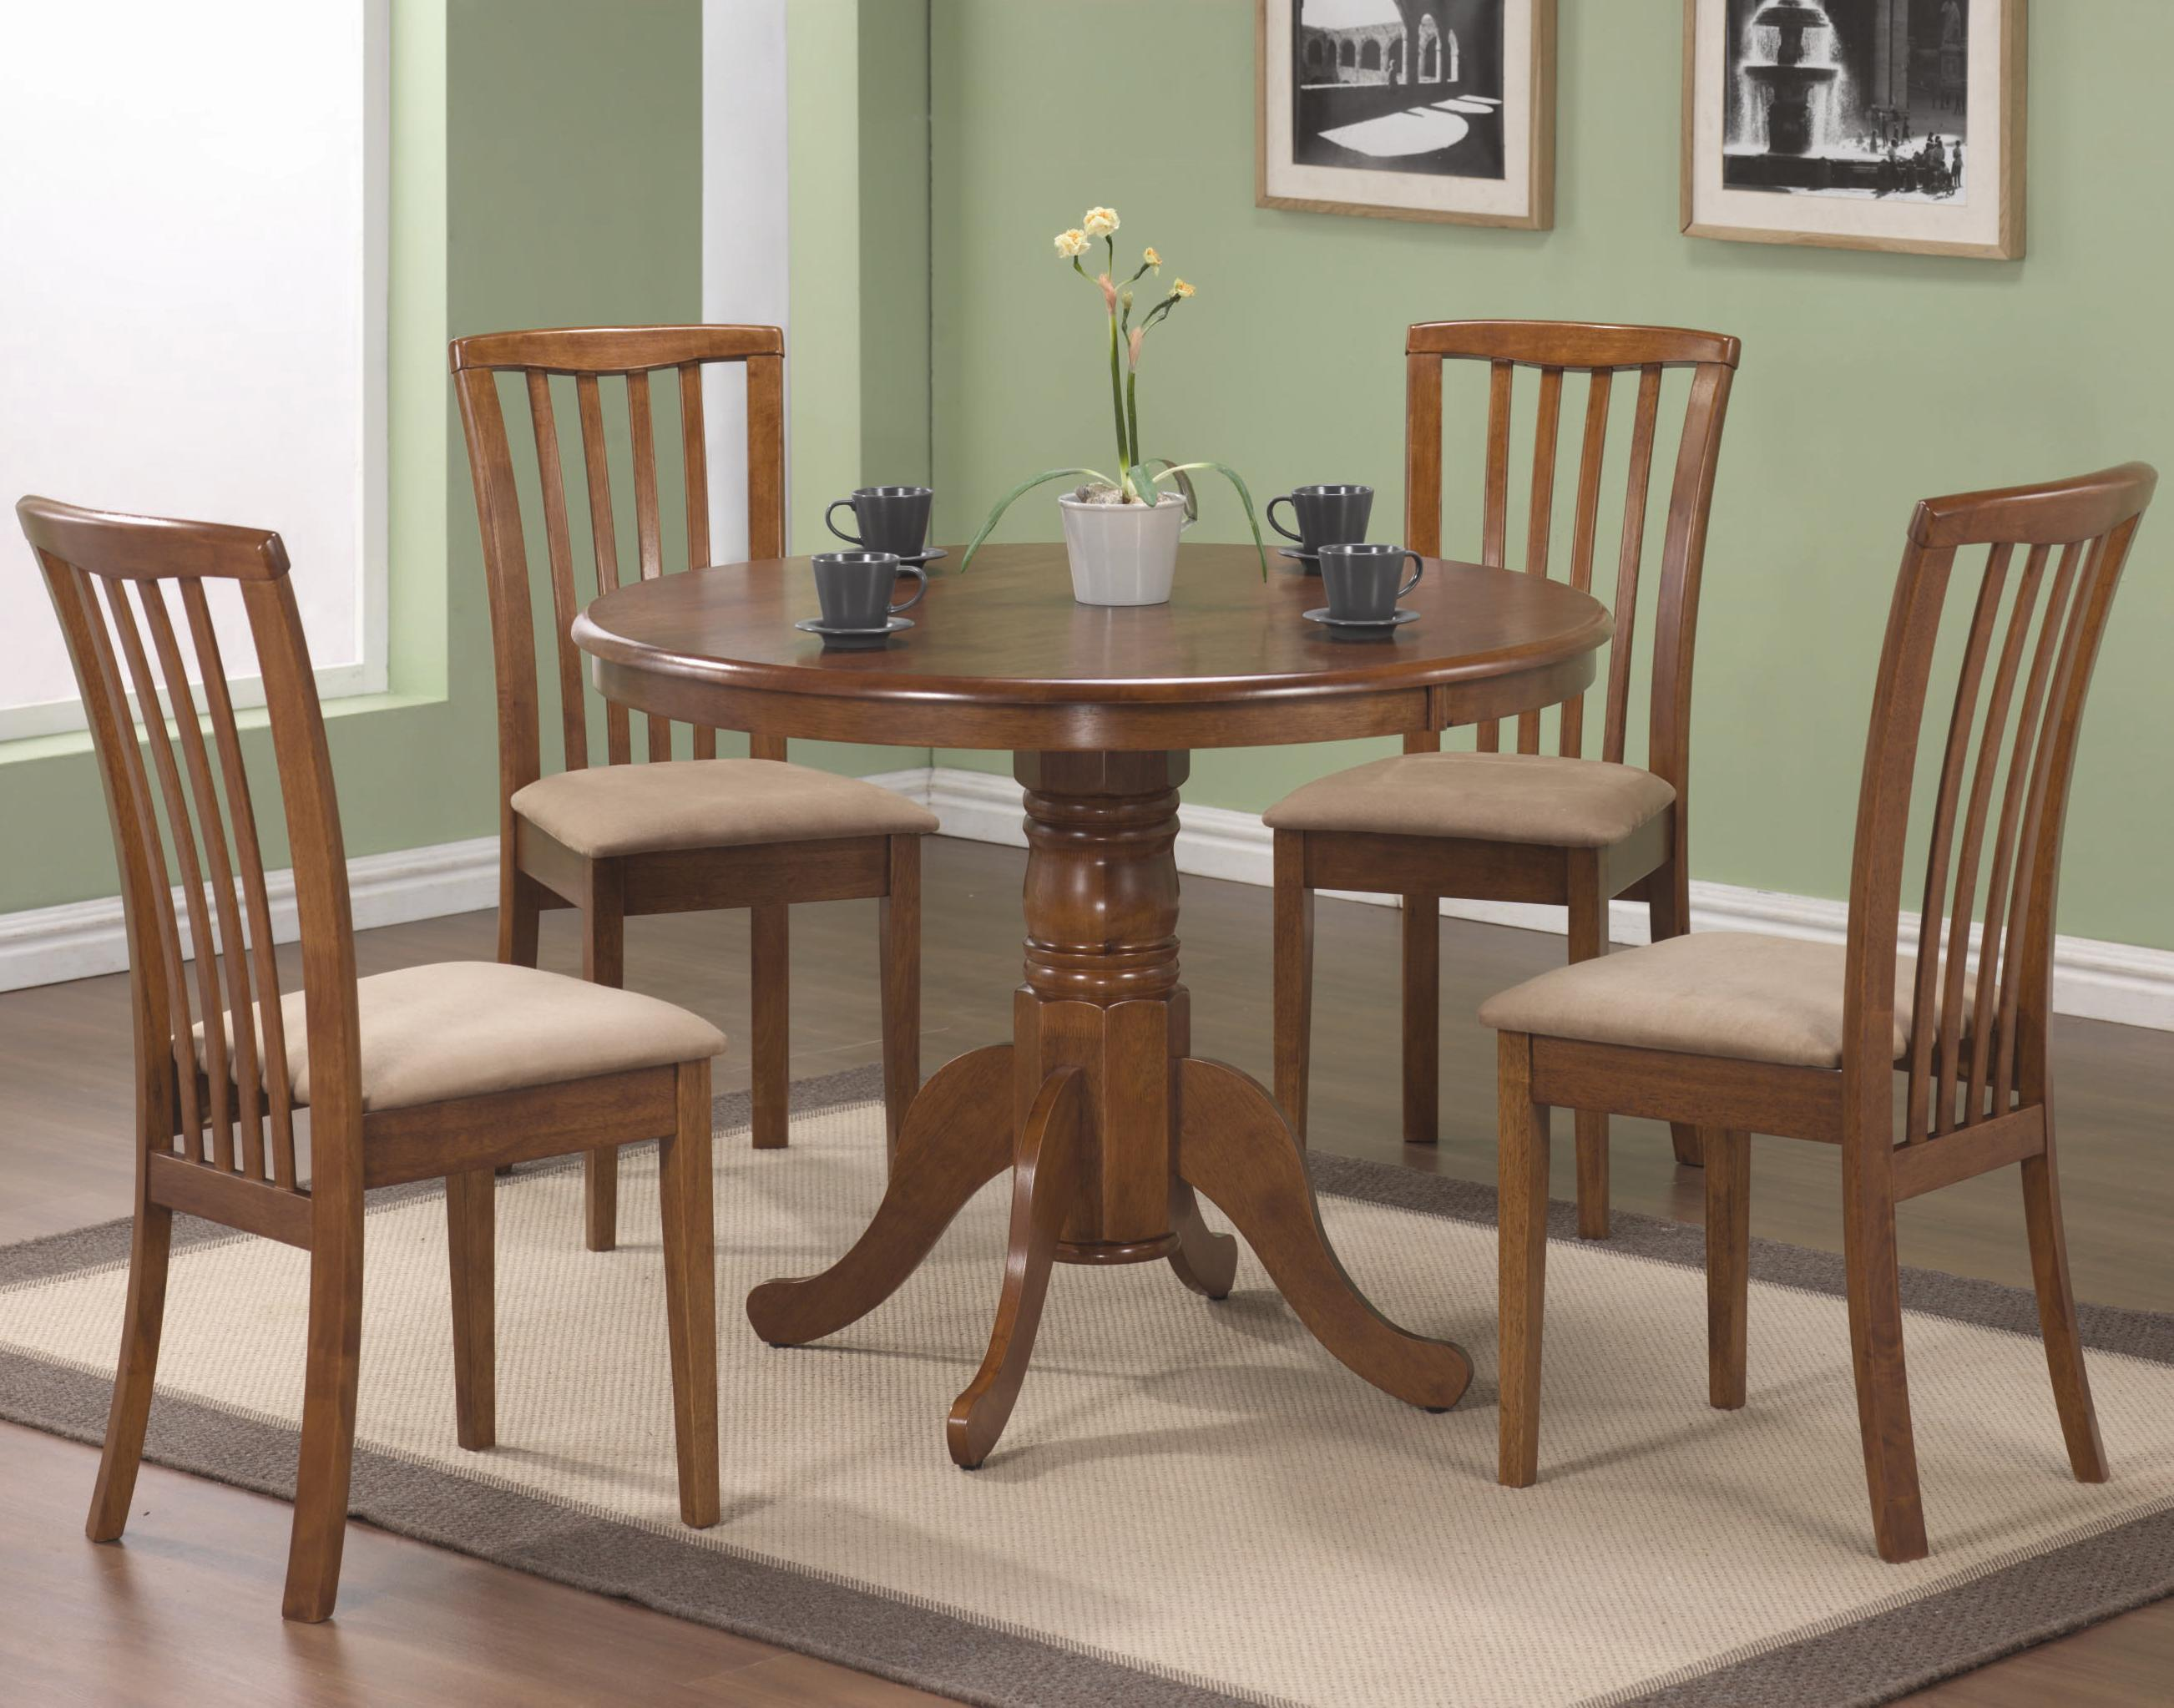 Coaster Brannan 5 Piece Dining Set - Item Number: 101091+4x2